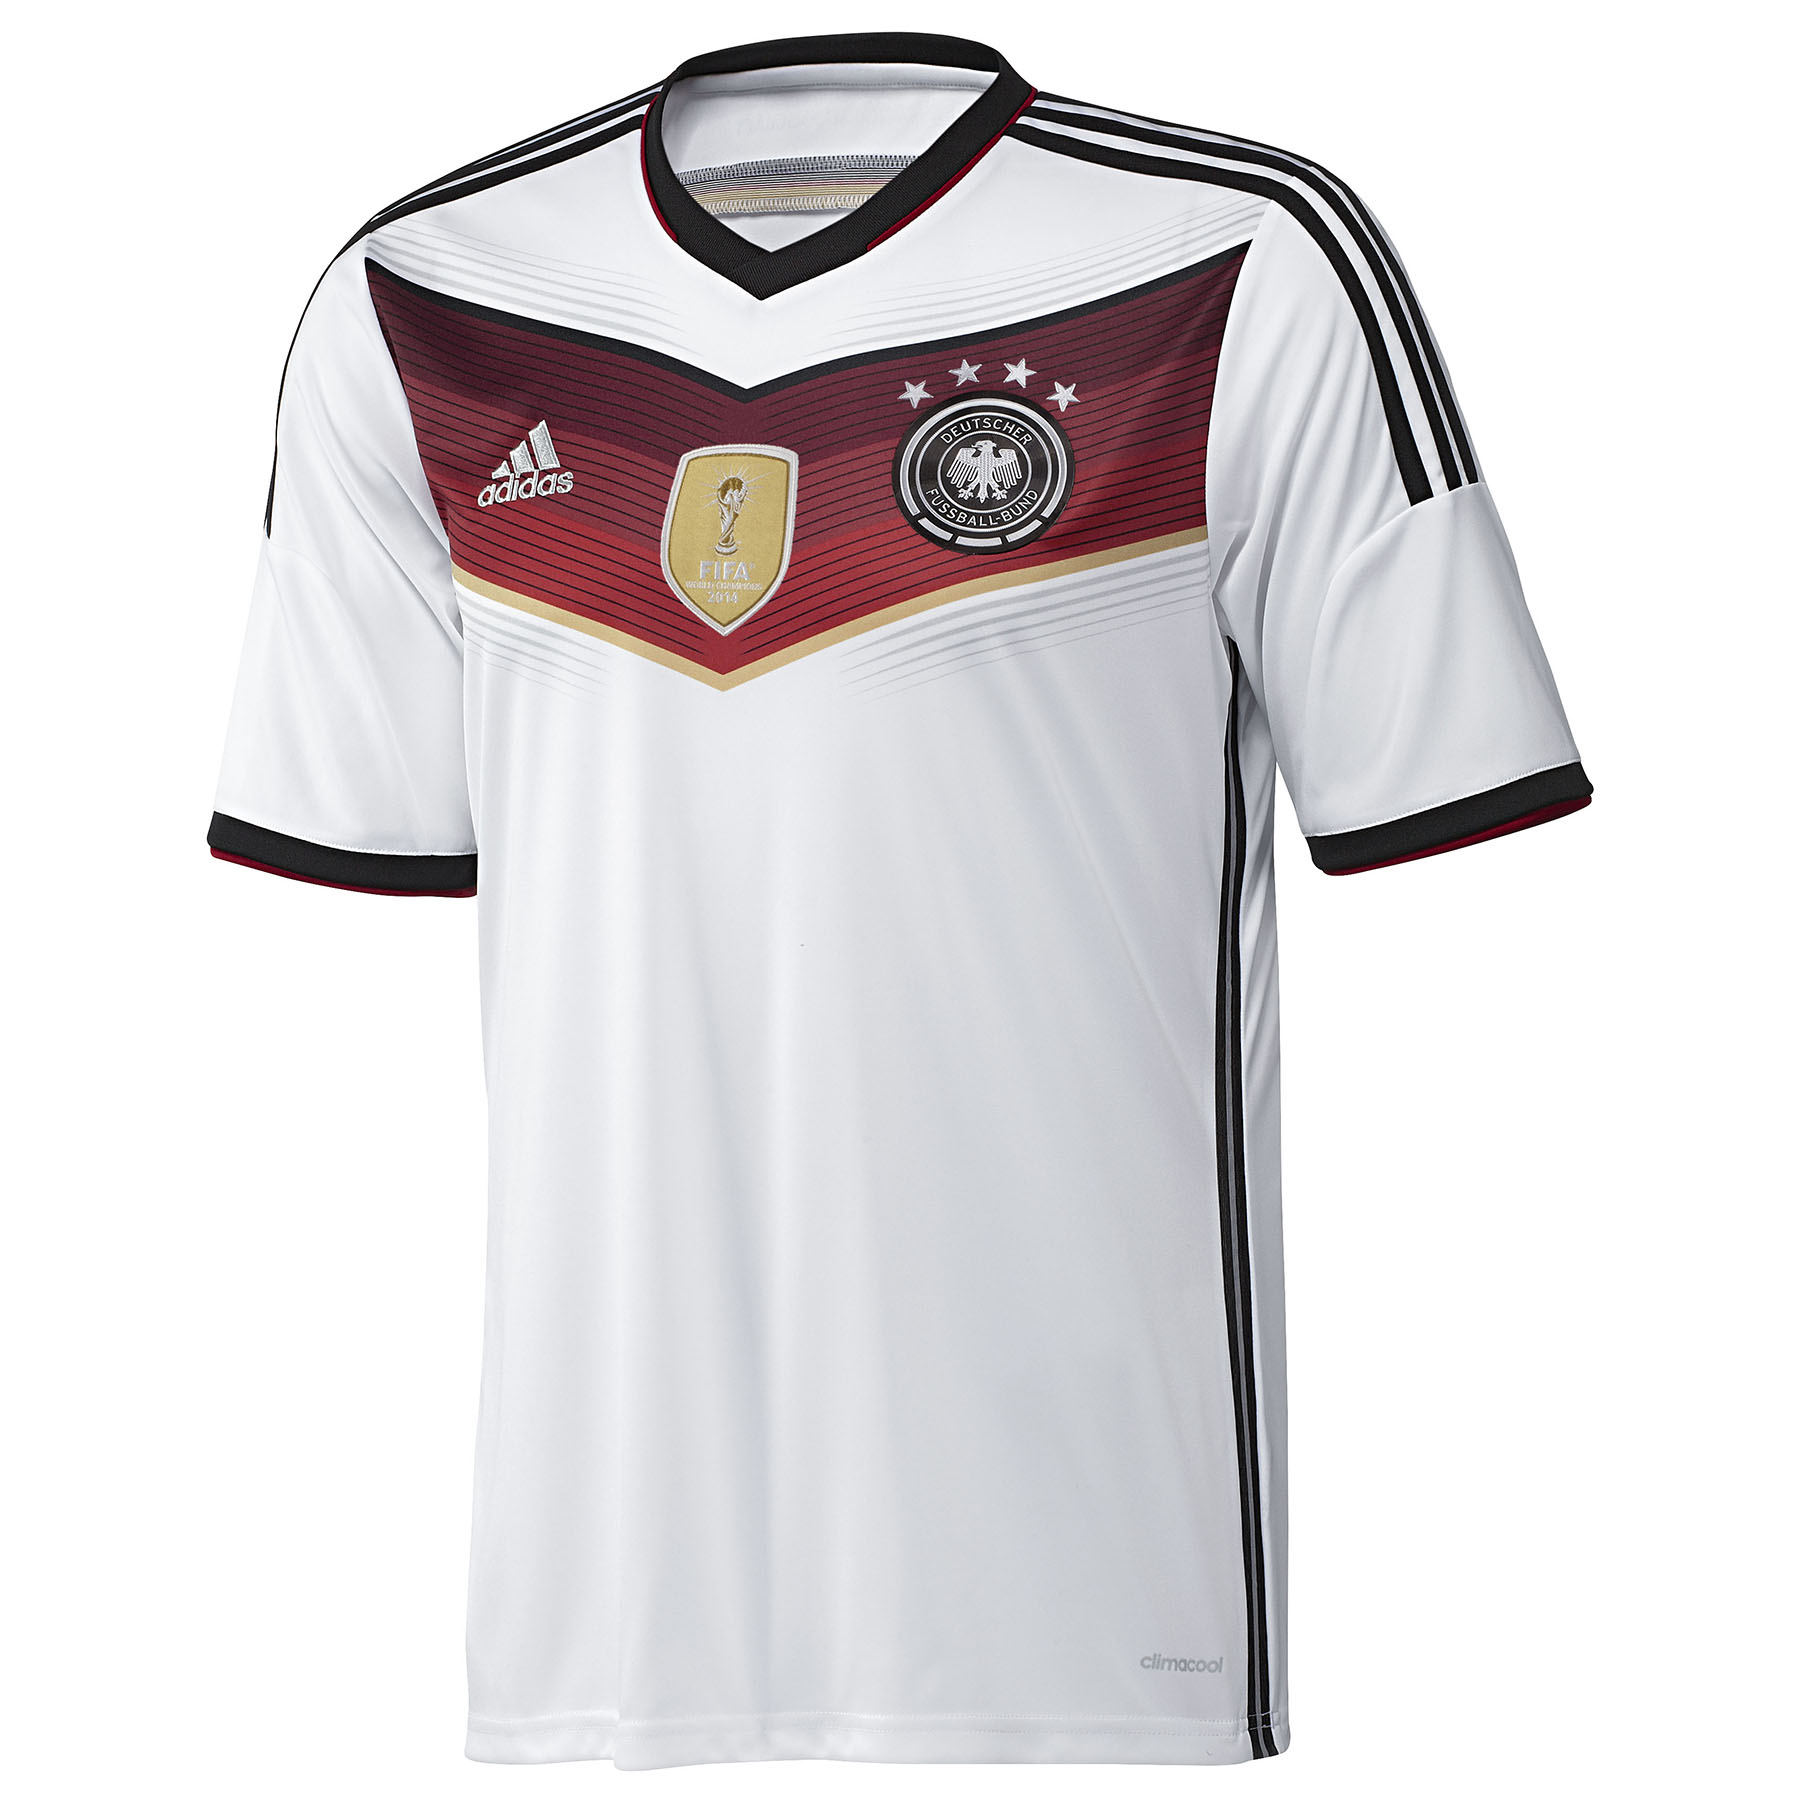 Germany Home Shirt 2014 - Four Stars White